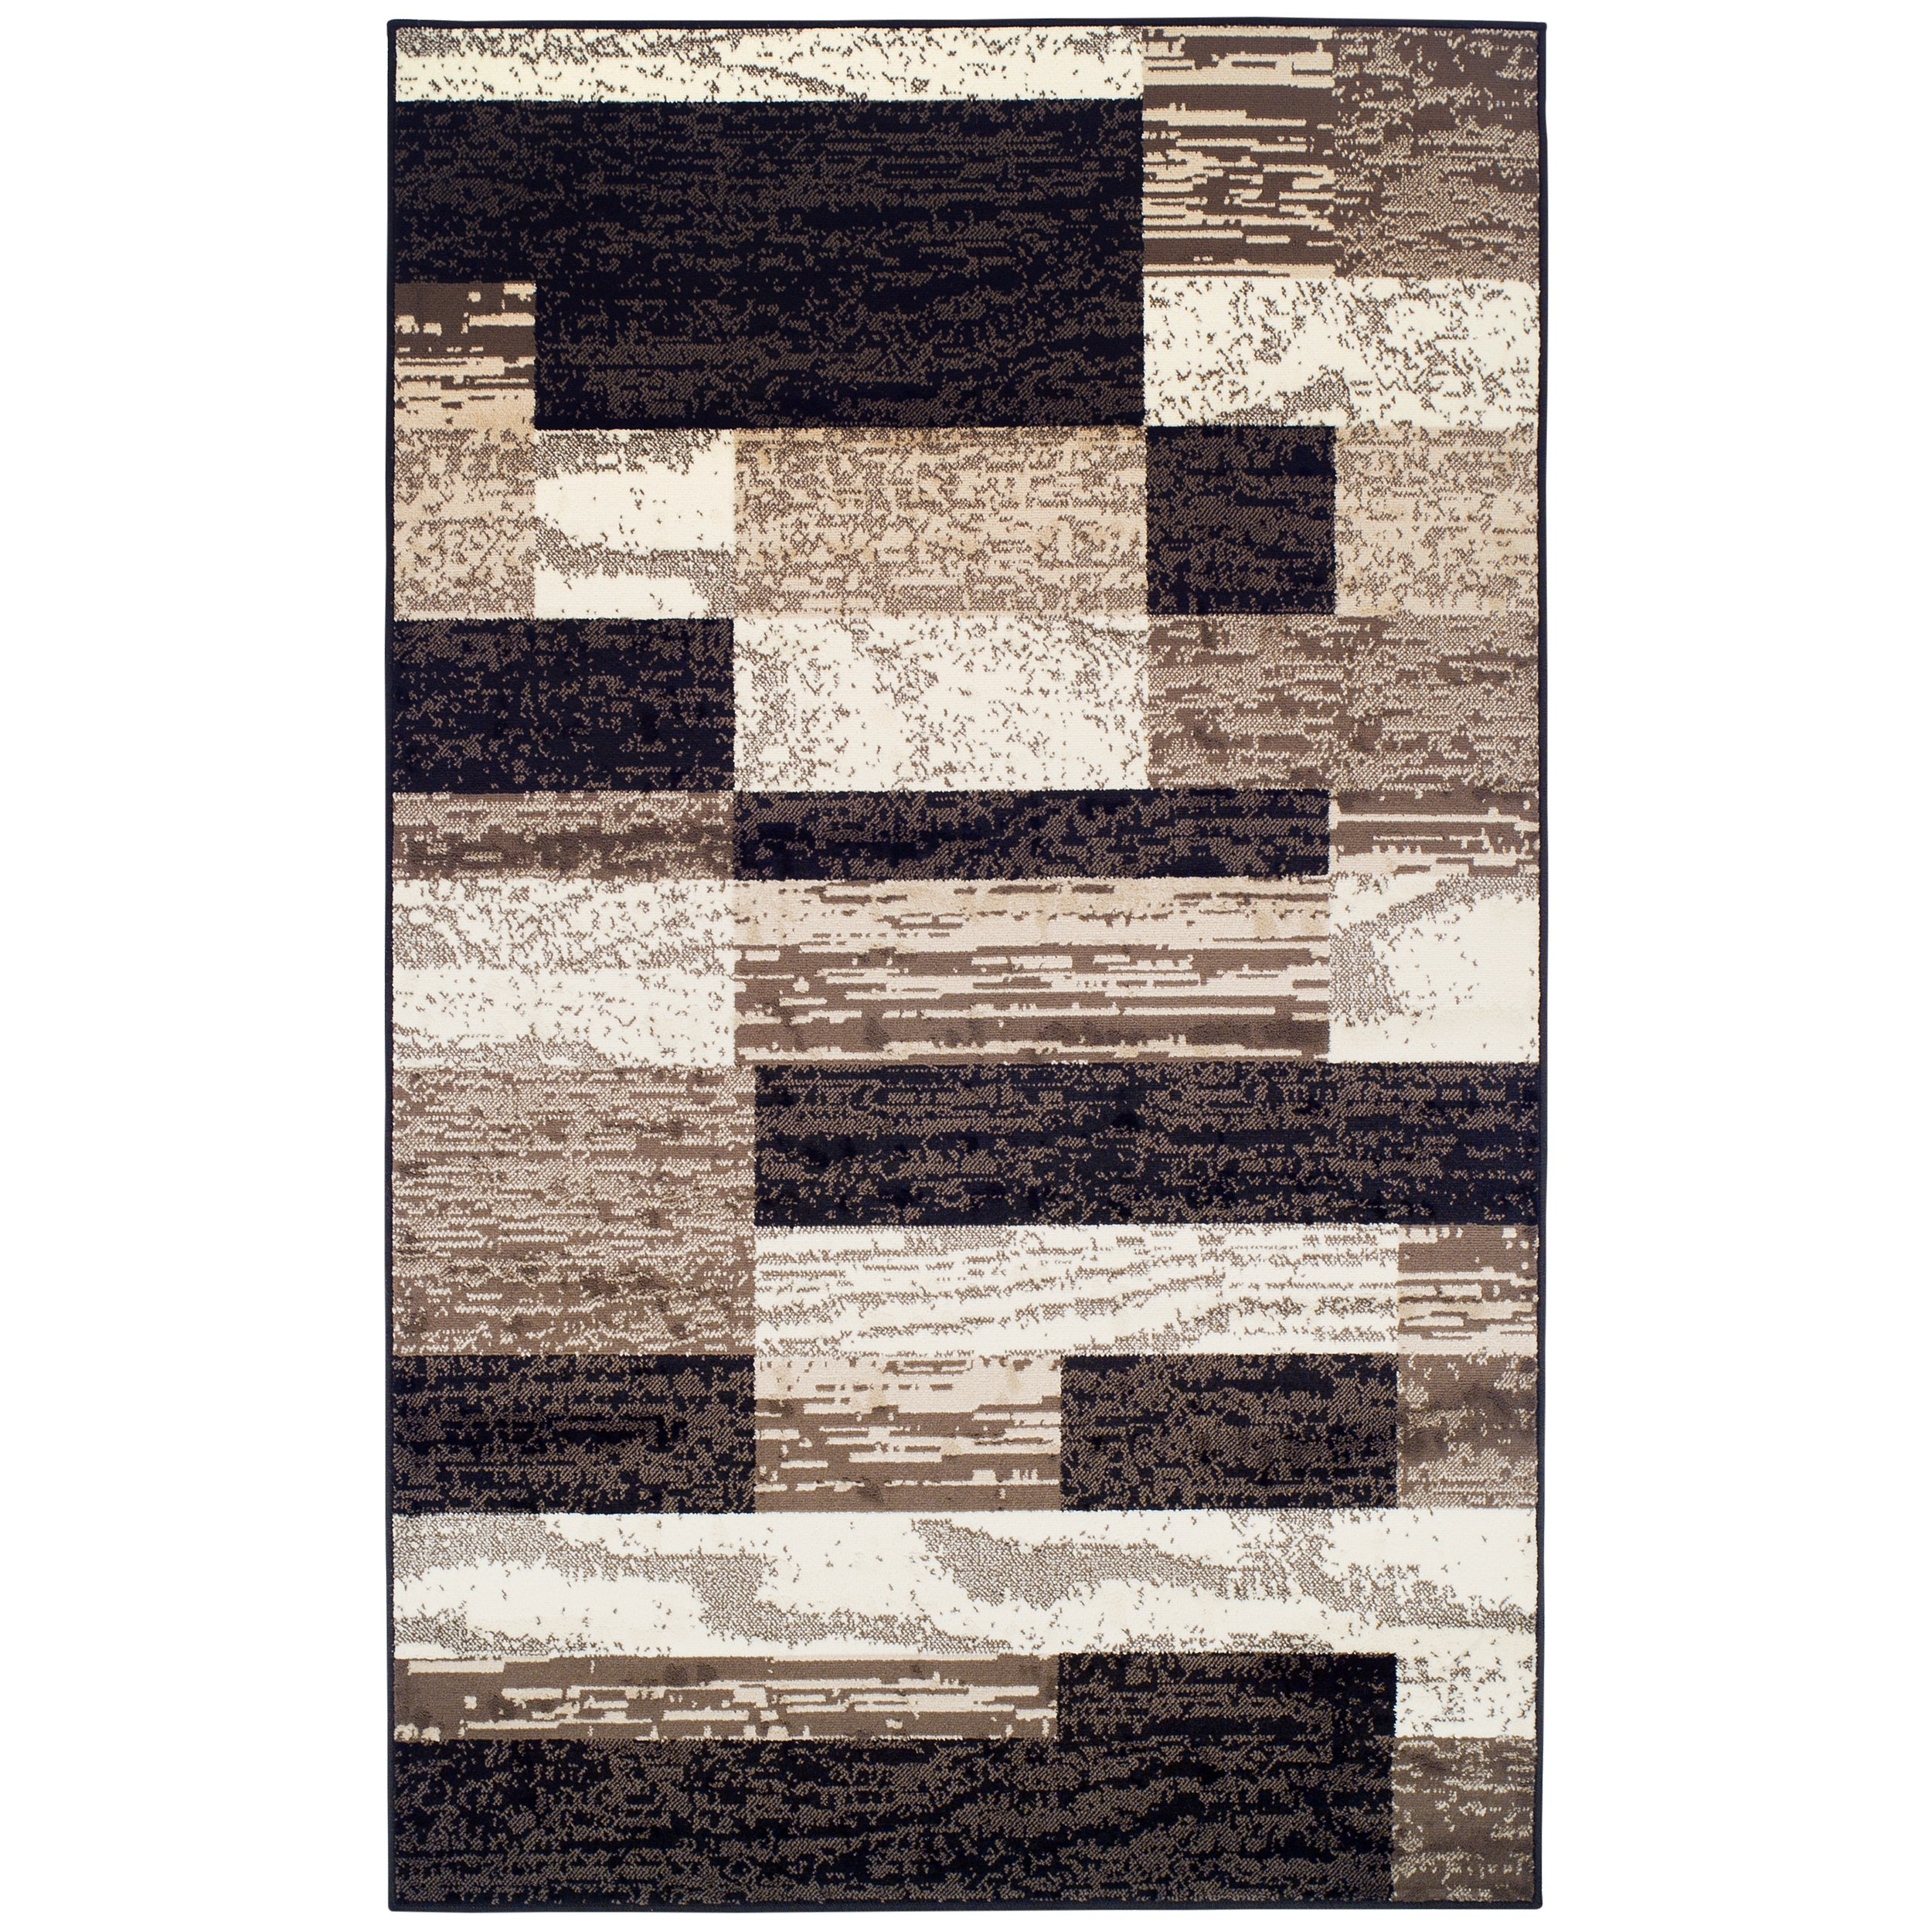 Superior Modern Rockwood Collection Area Rug, 8mm Pile Height with Jute Backing, Textured Geometric Brick Design, Anti-Static, Water-Repellent Rugs - Chocolate, 8' x 10' Rug